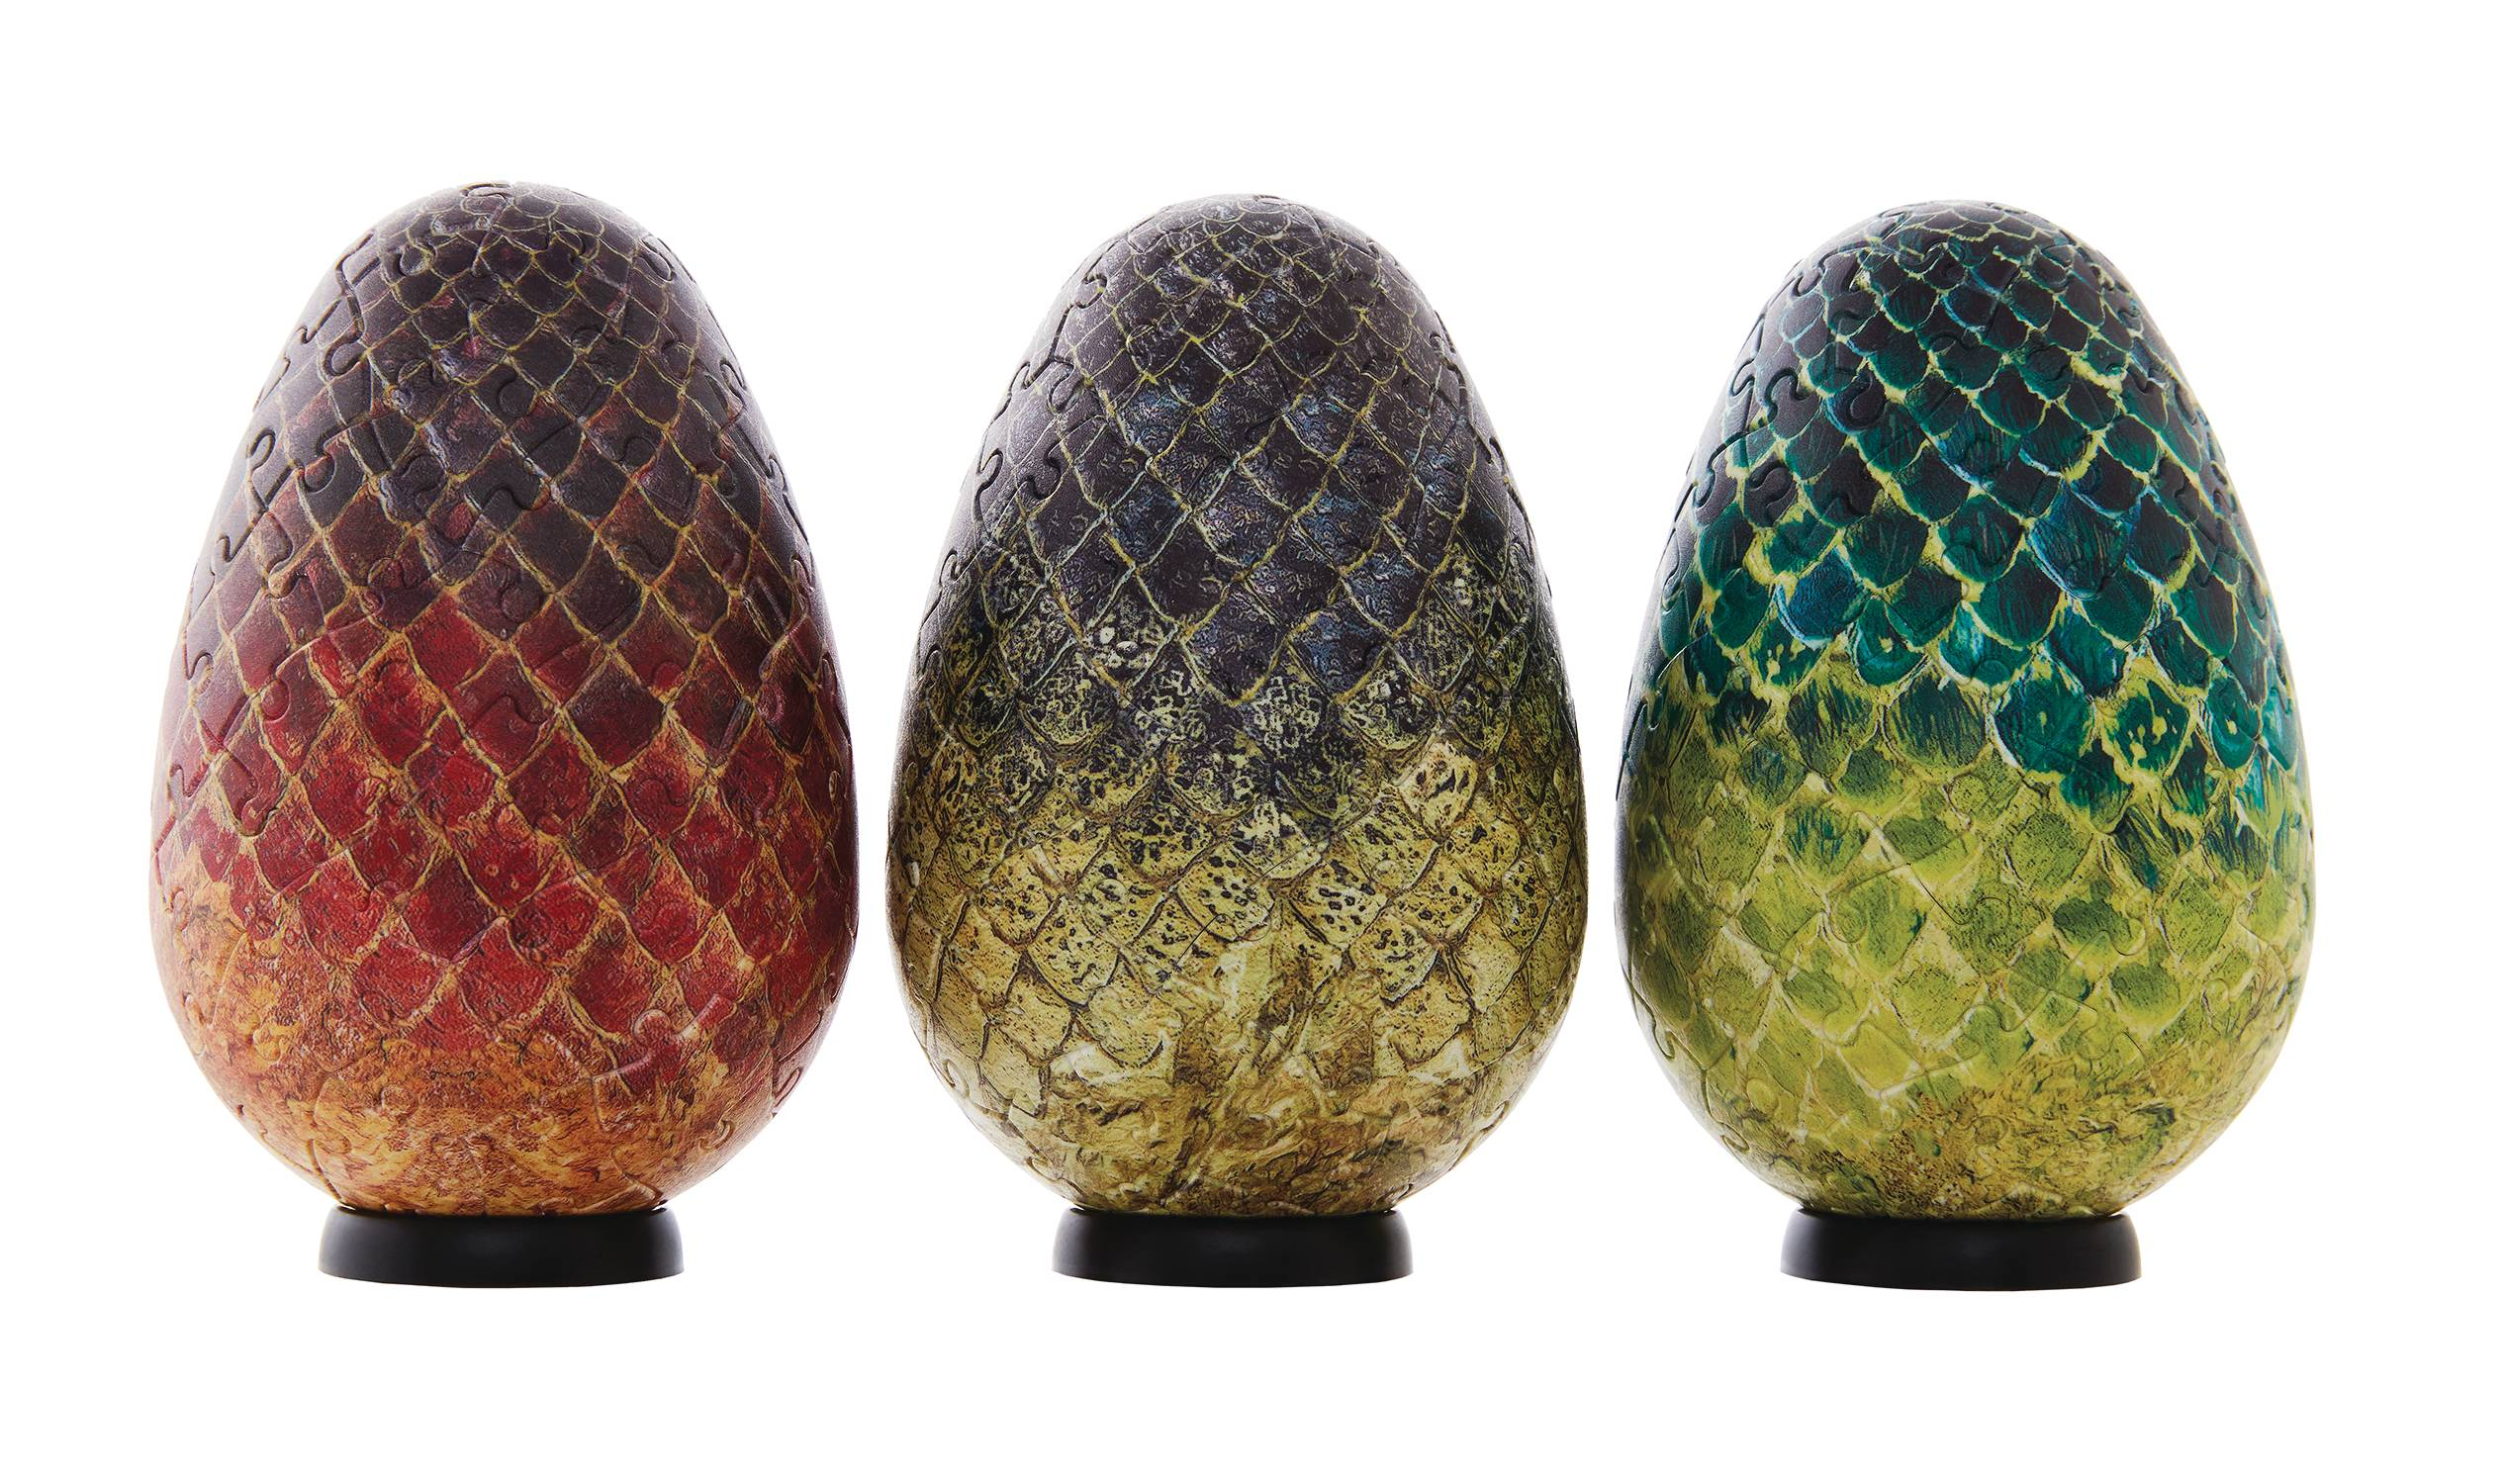 4D GAME OF THRONES DRAGON EGG 3PC PUZZLE SET